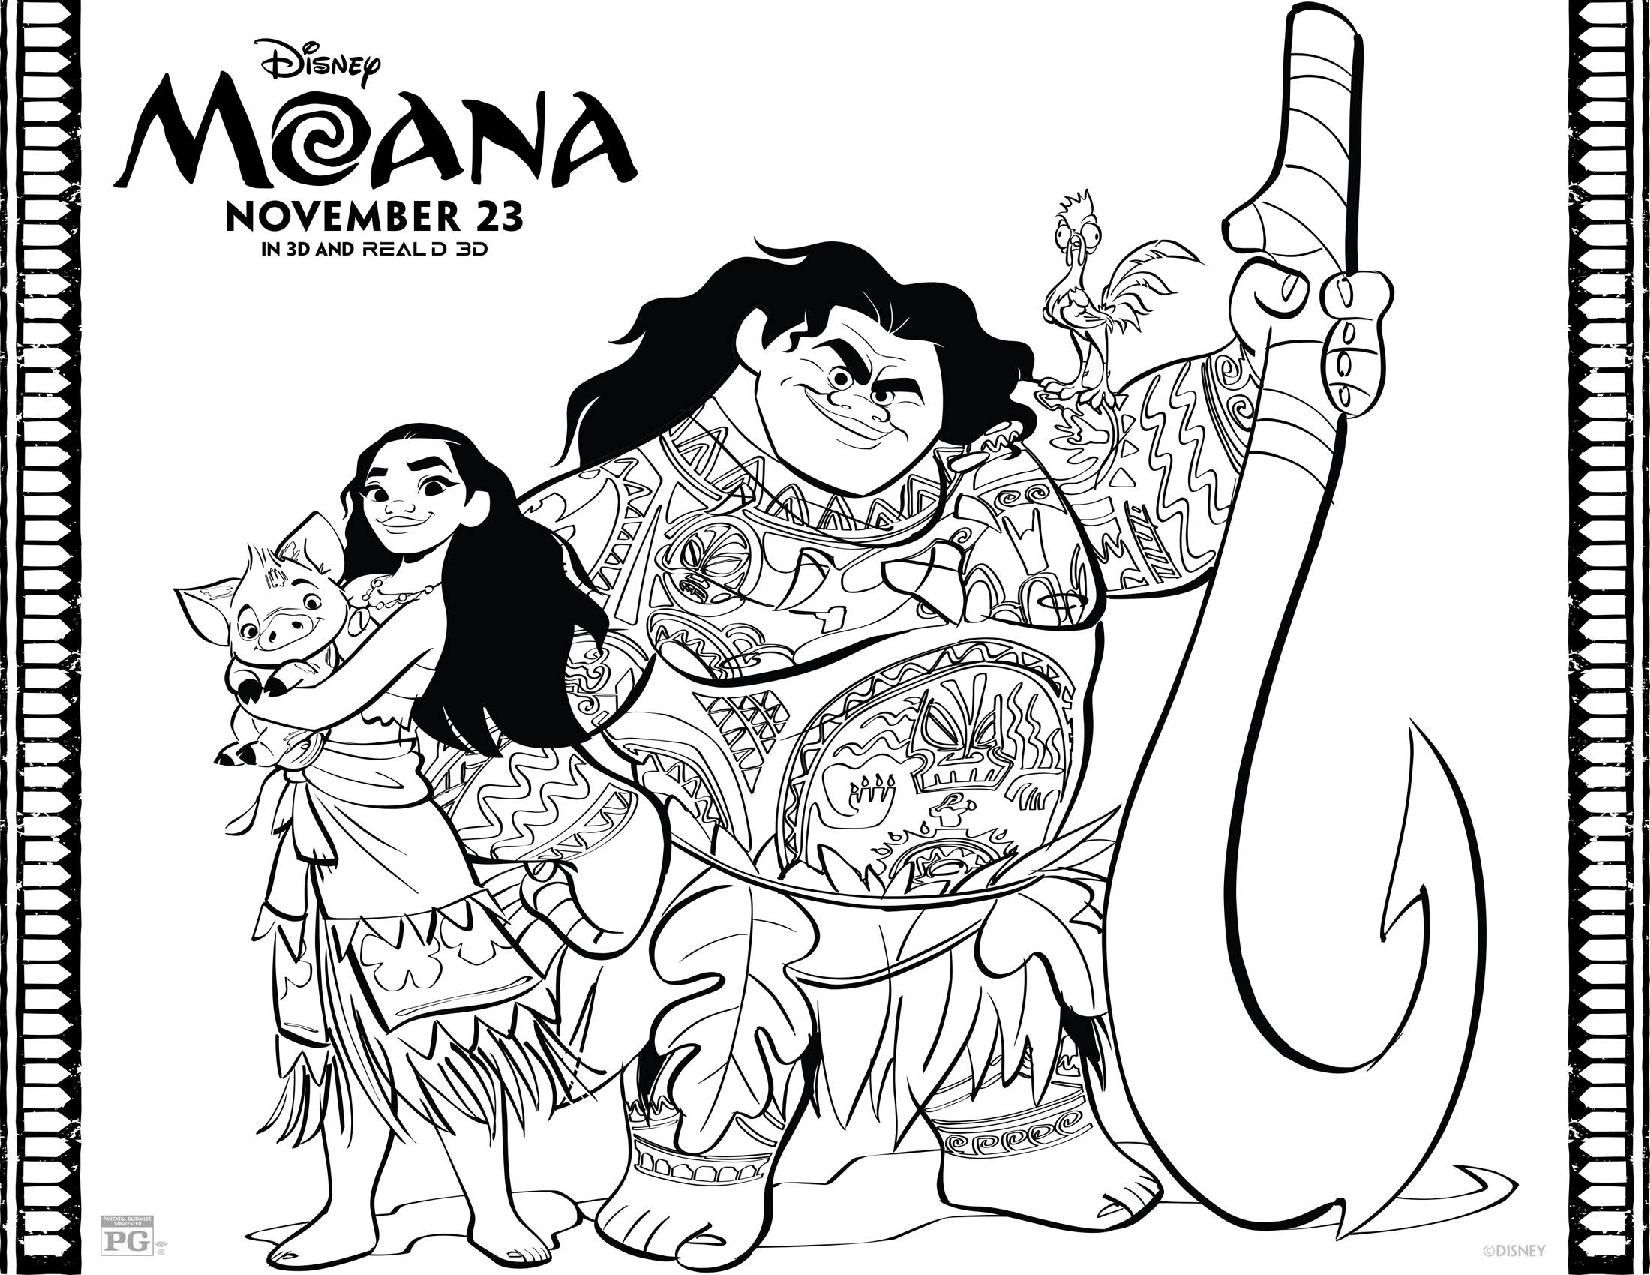 Download FREE Moana Coloring Pages And Games From The Disney Movie